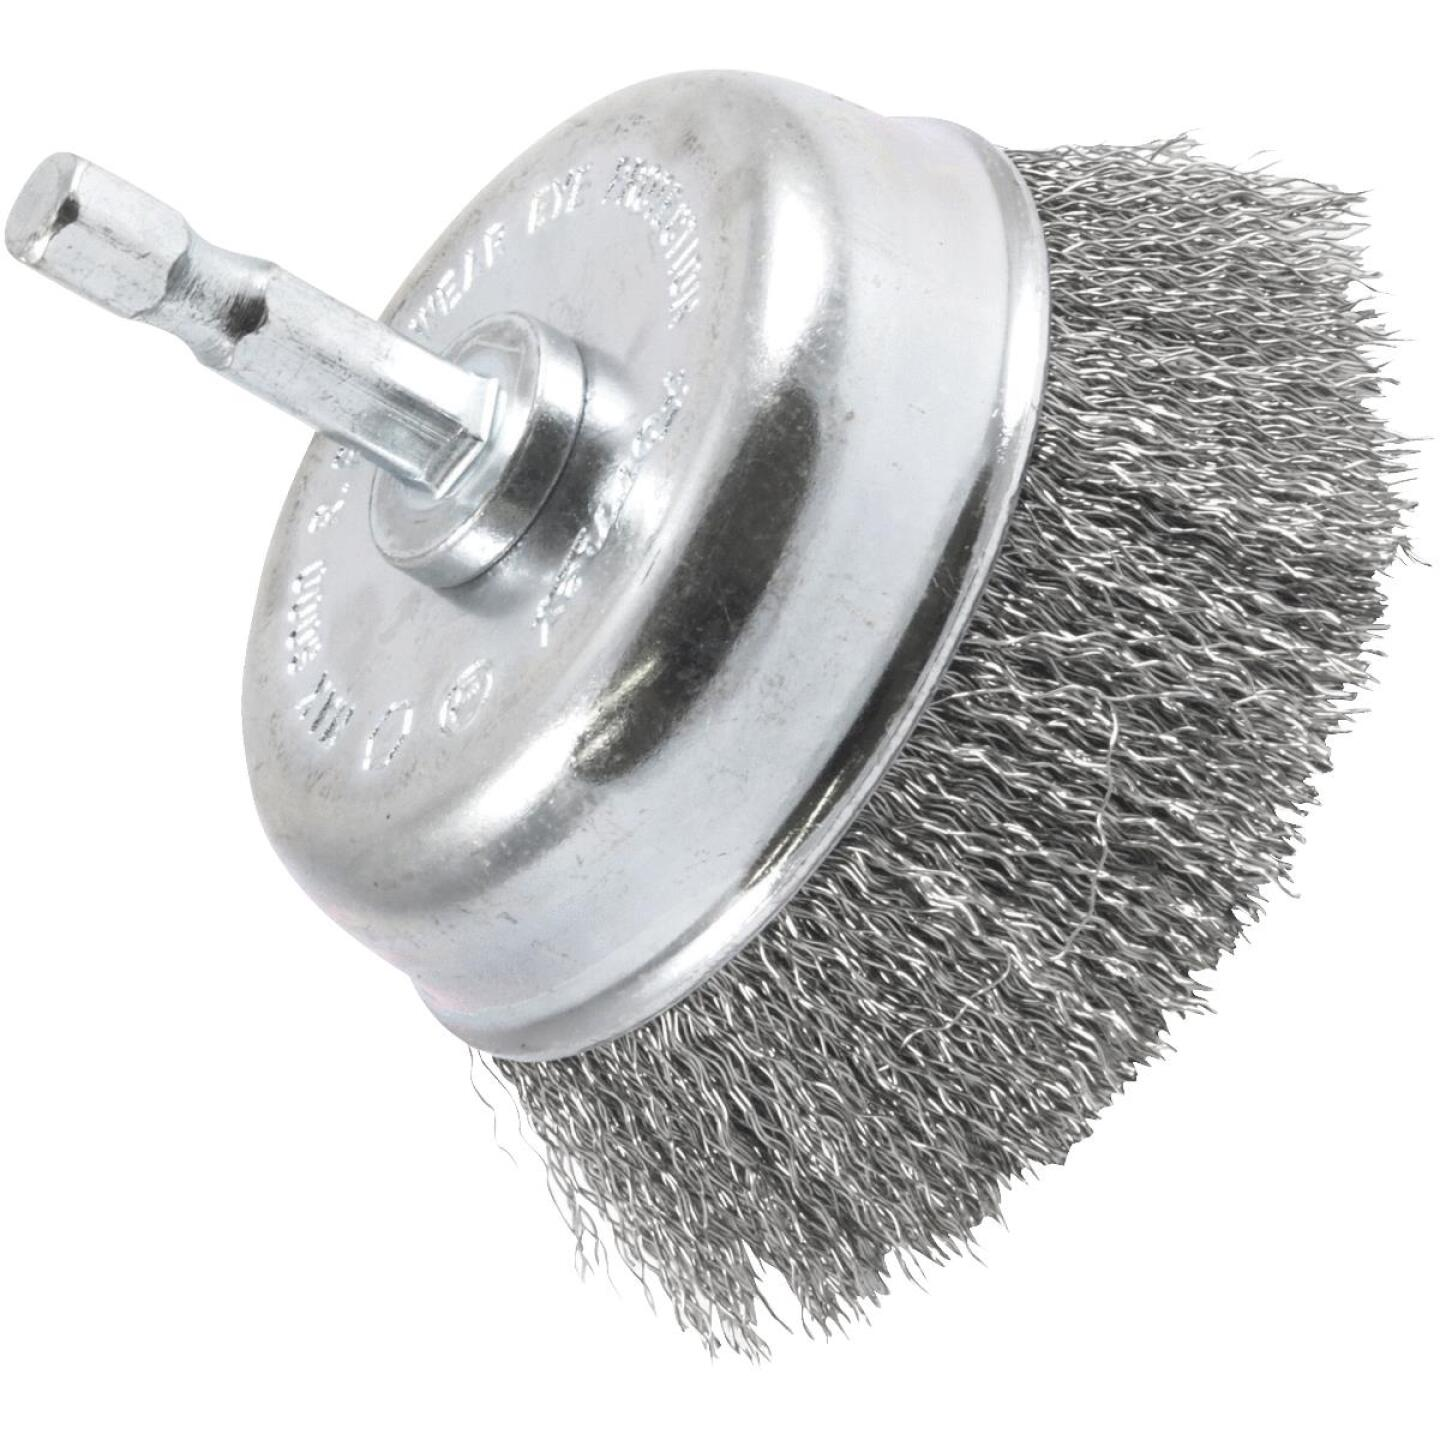 Forney 3 In. 1/4 In. Hex Fine Drill-Mounted Wire Brush Image 1